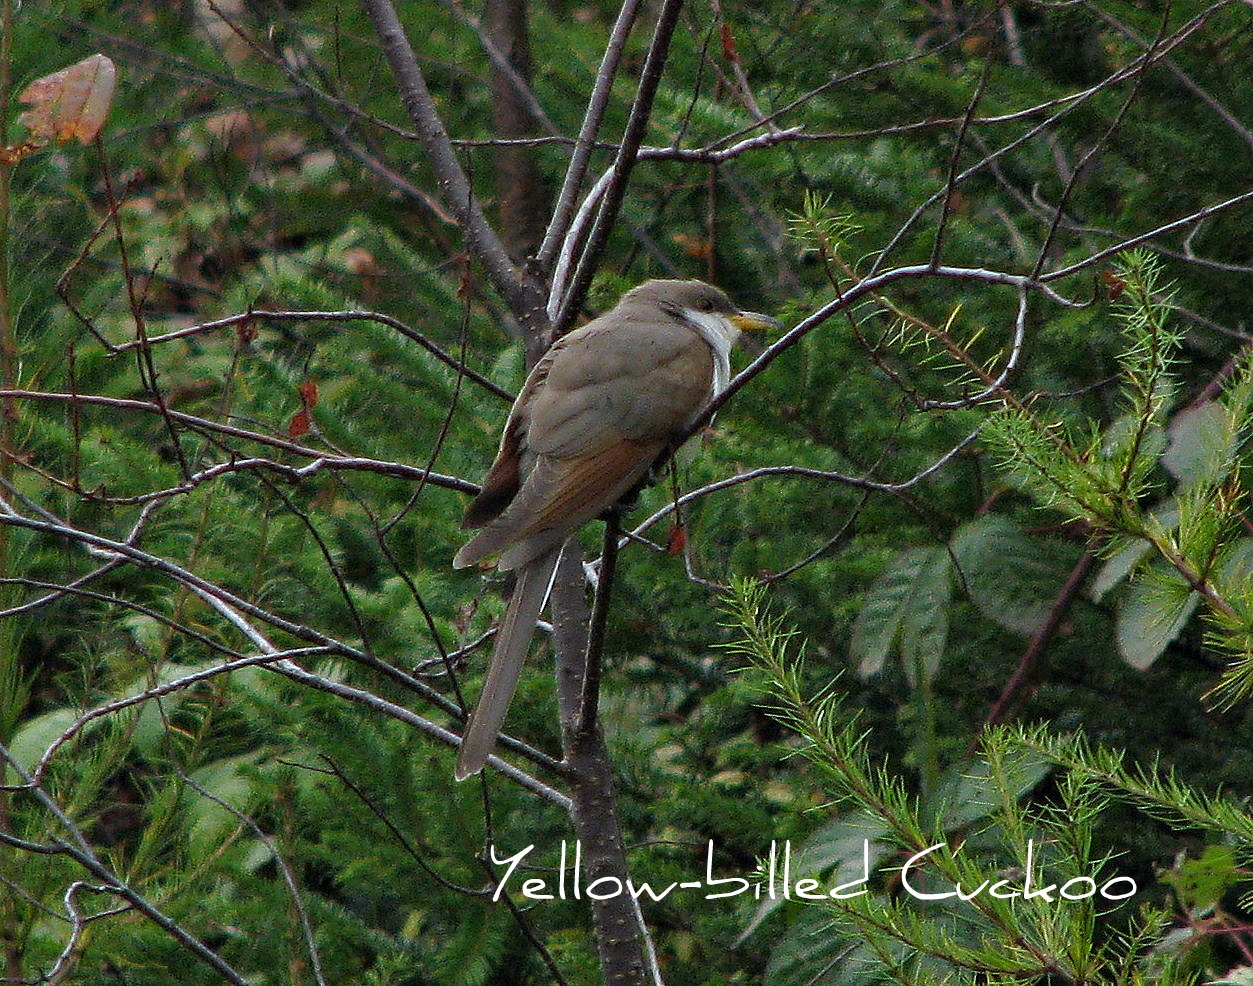 KaHolly Cuckoo For Cocoa Puffs